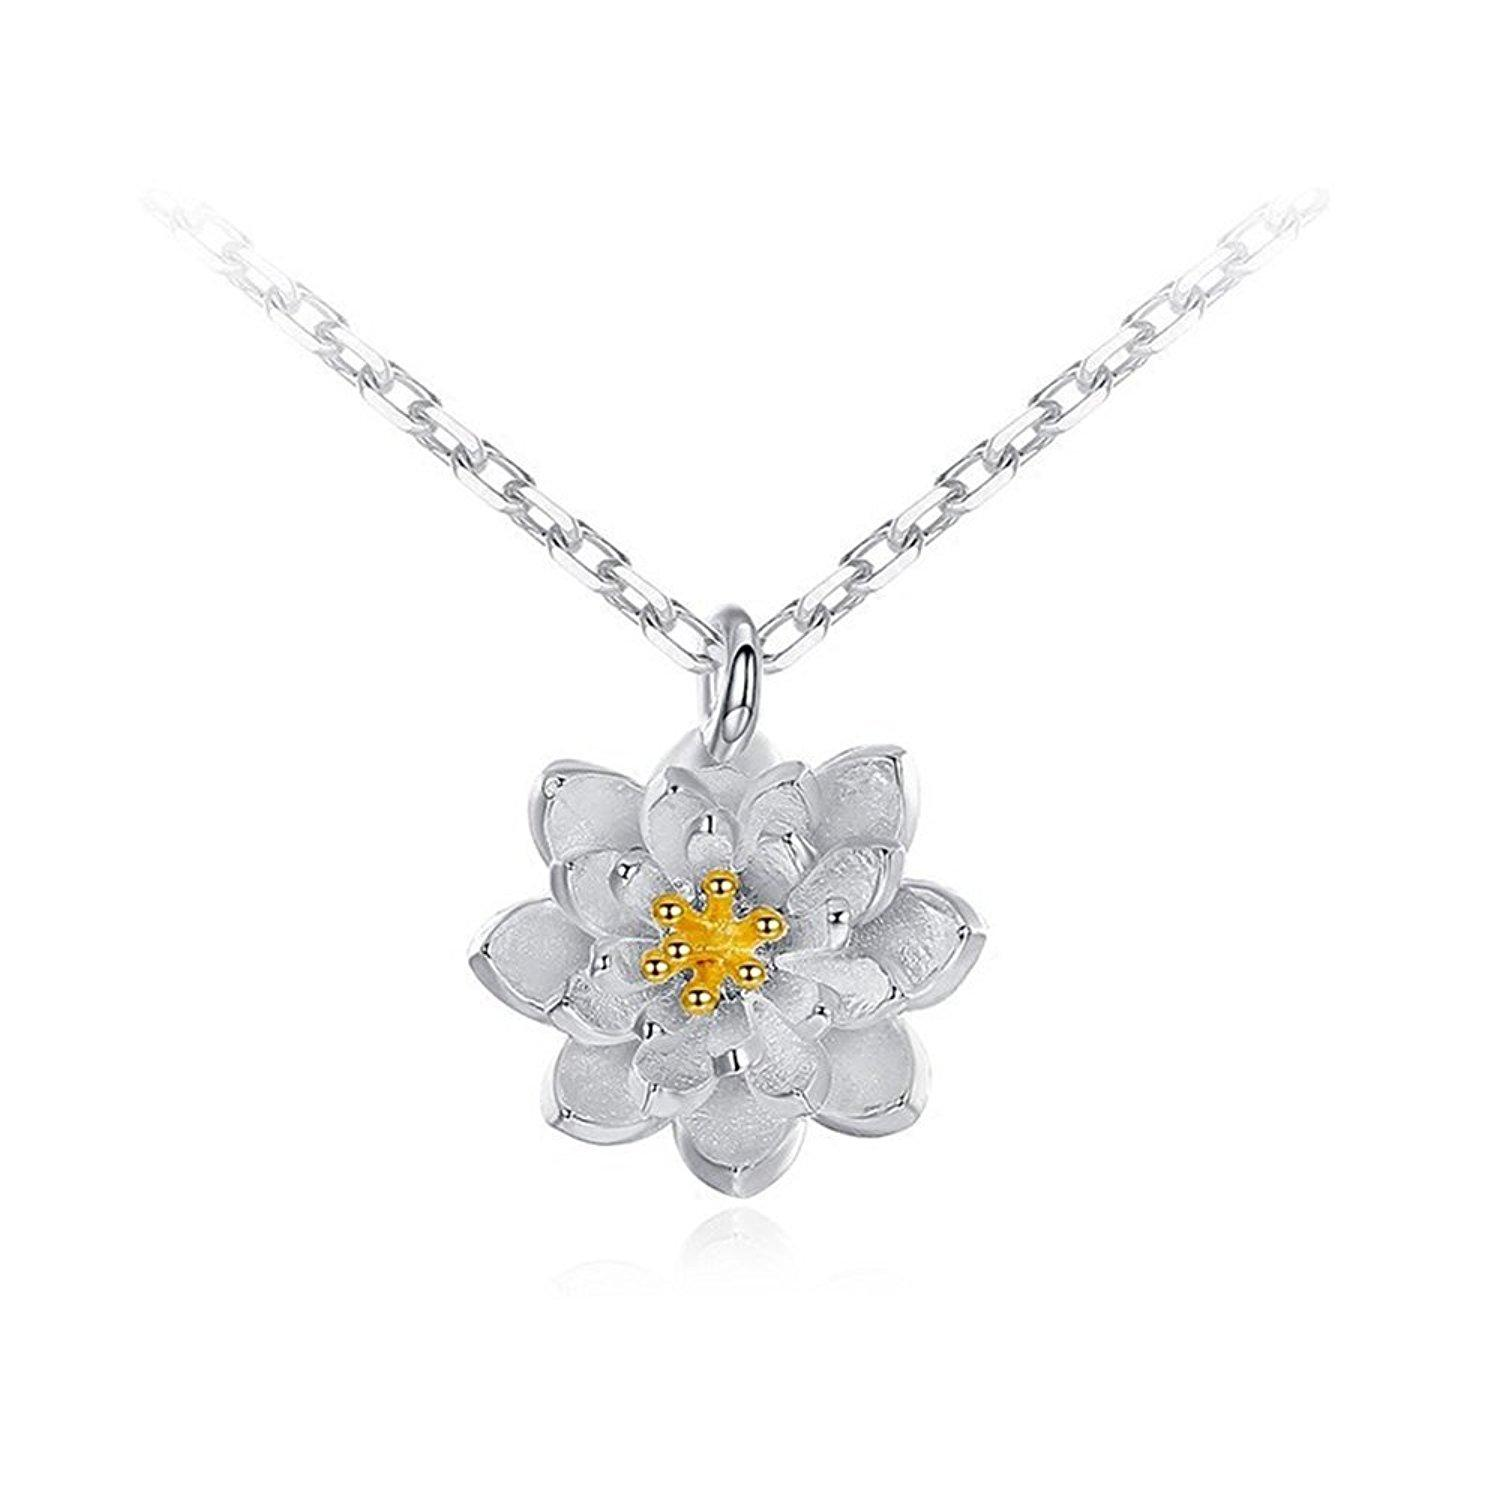 Wholesale lotus flower necklace cute blooming flower silver plated wholesale lotus flower necklace cute blooming flower silver plated chain pendant necklaces wedding party jewelry amber pendant necklace unique jewelry from izmirmasajfo